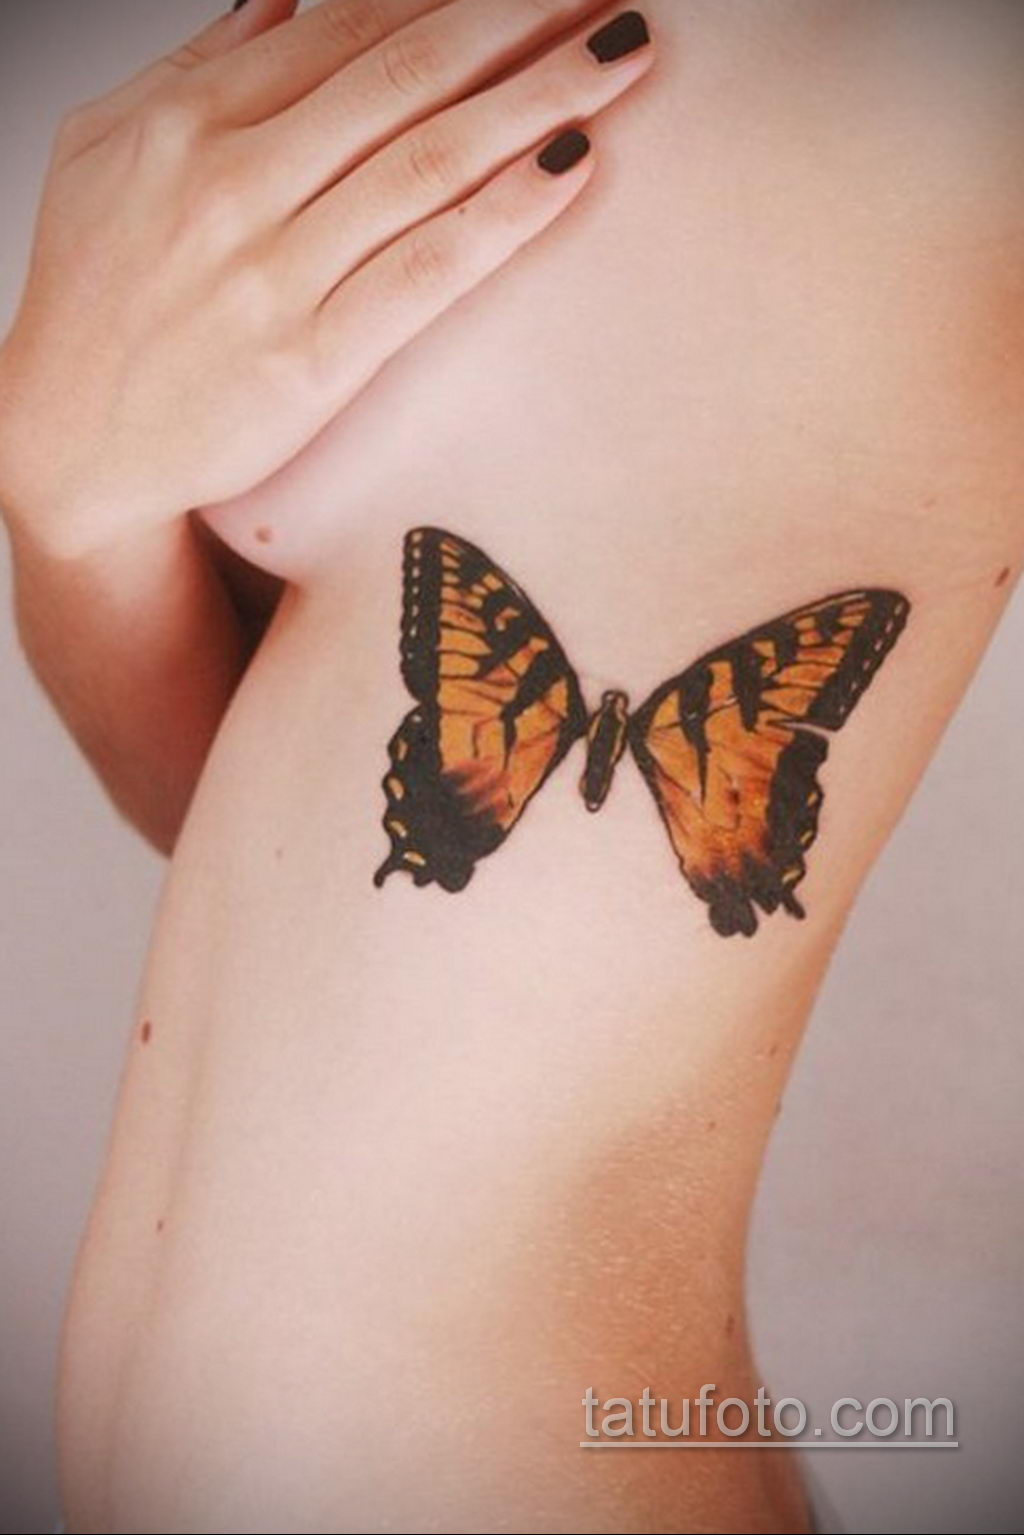 Harry Styles Tattoos And Meanings